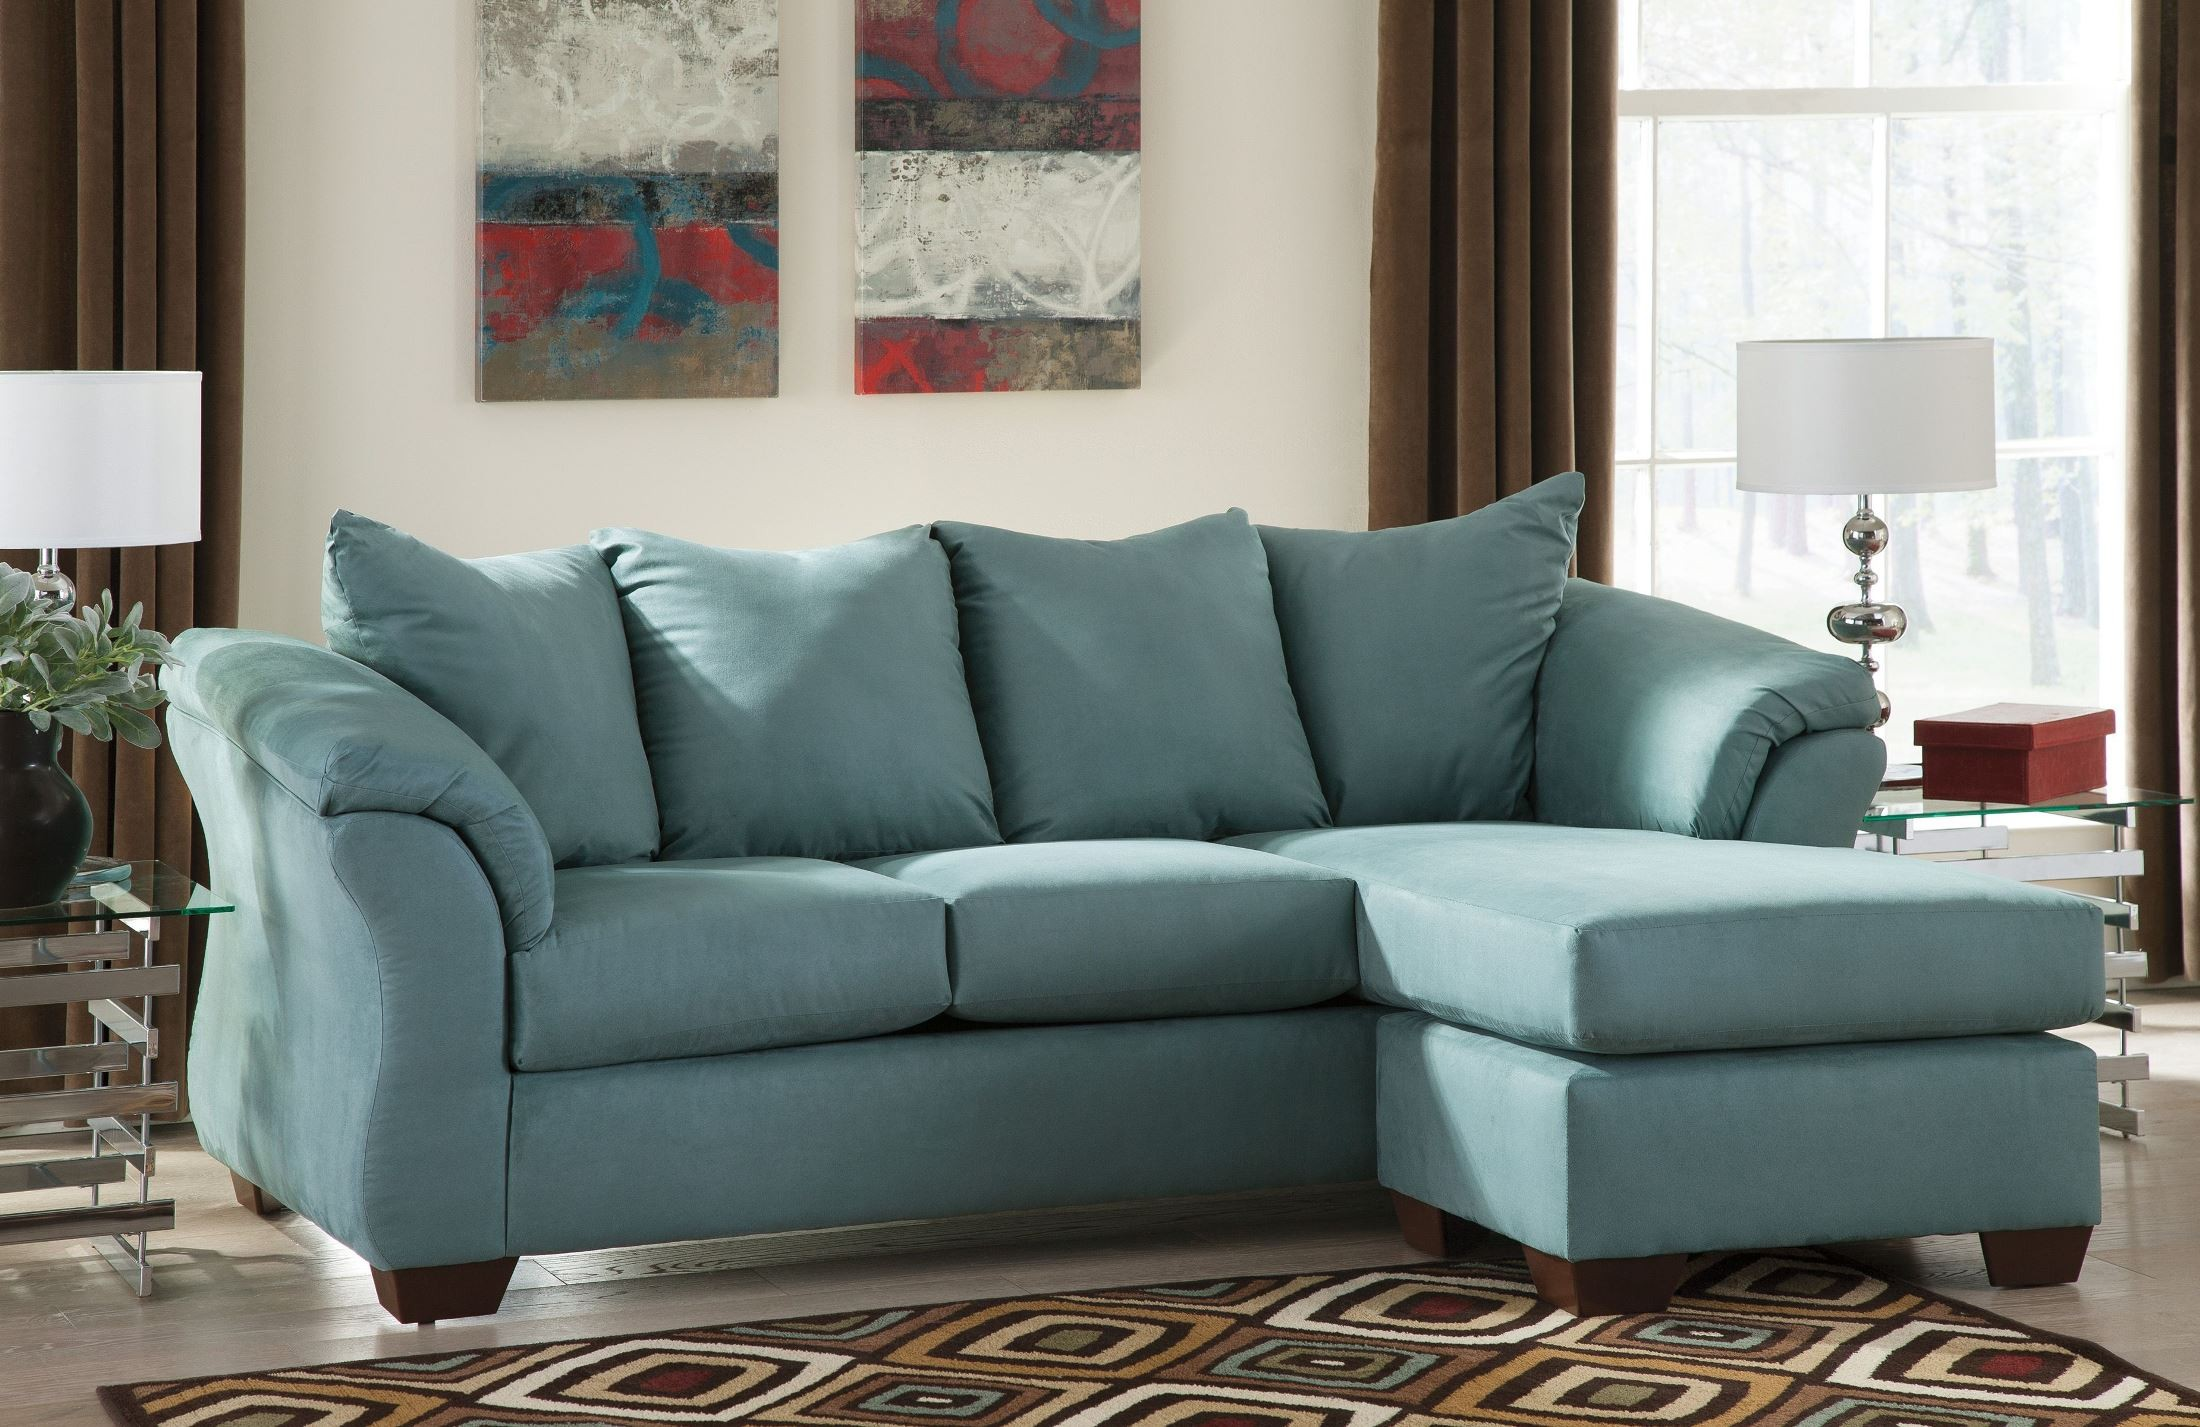 ashley furniture darcy sofa reviews new york city sky chaise from 7500618 coleman